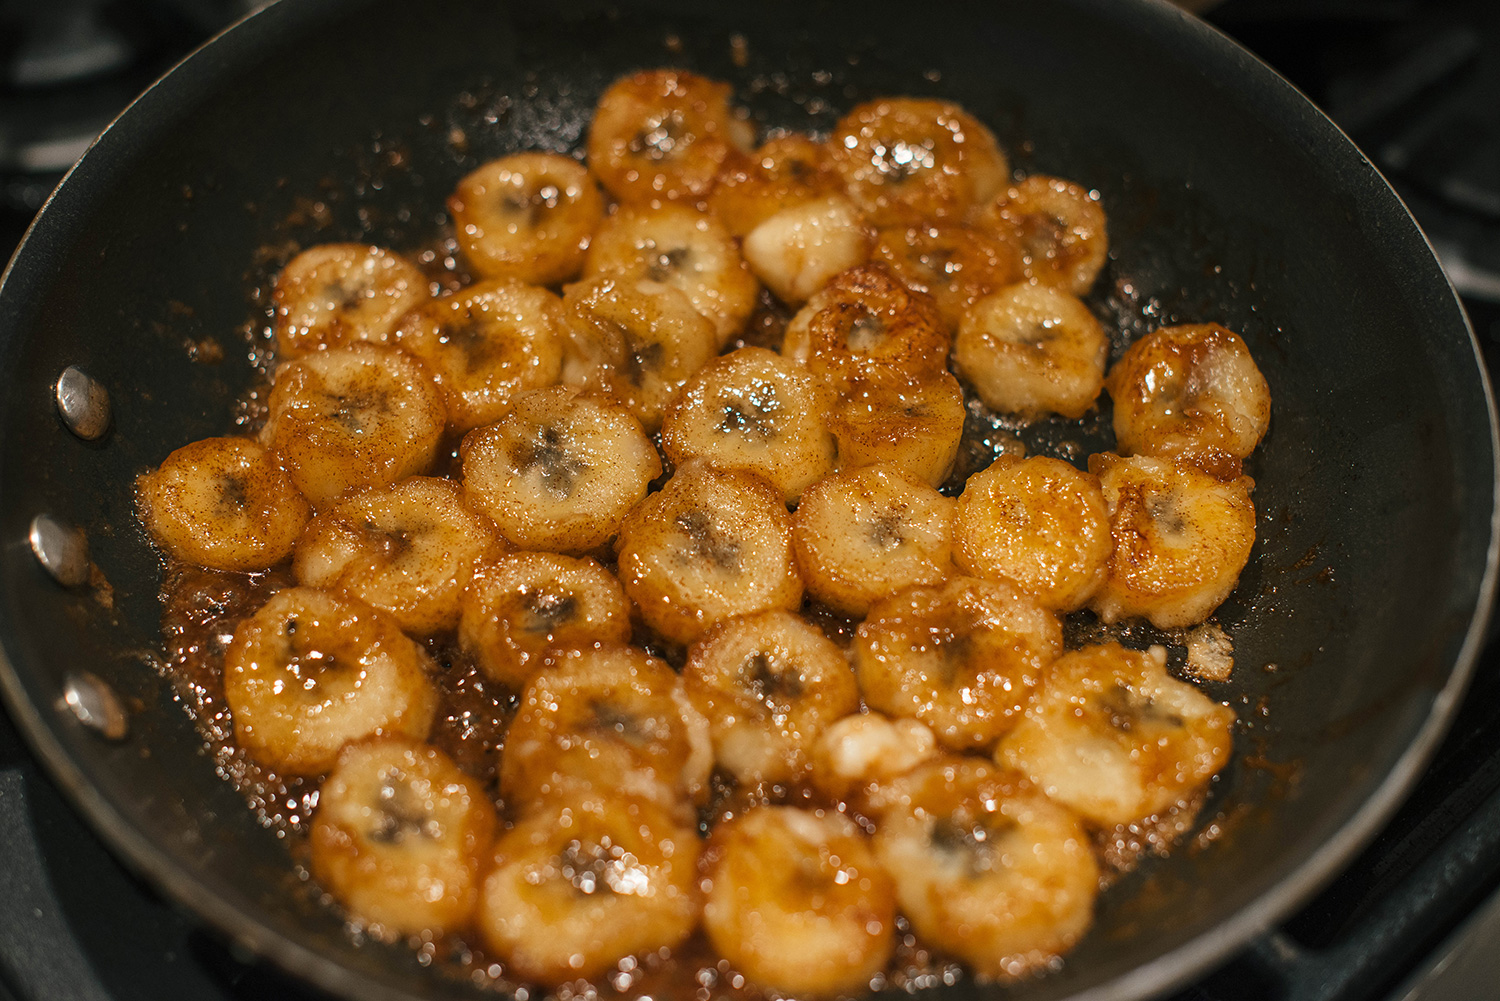 Caramelized Bananas + Bluebell